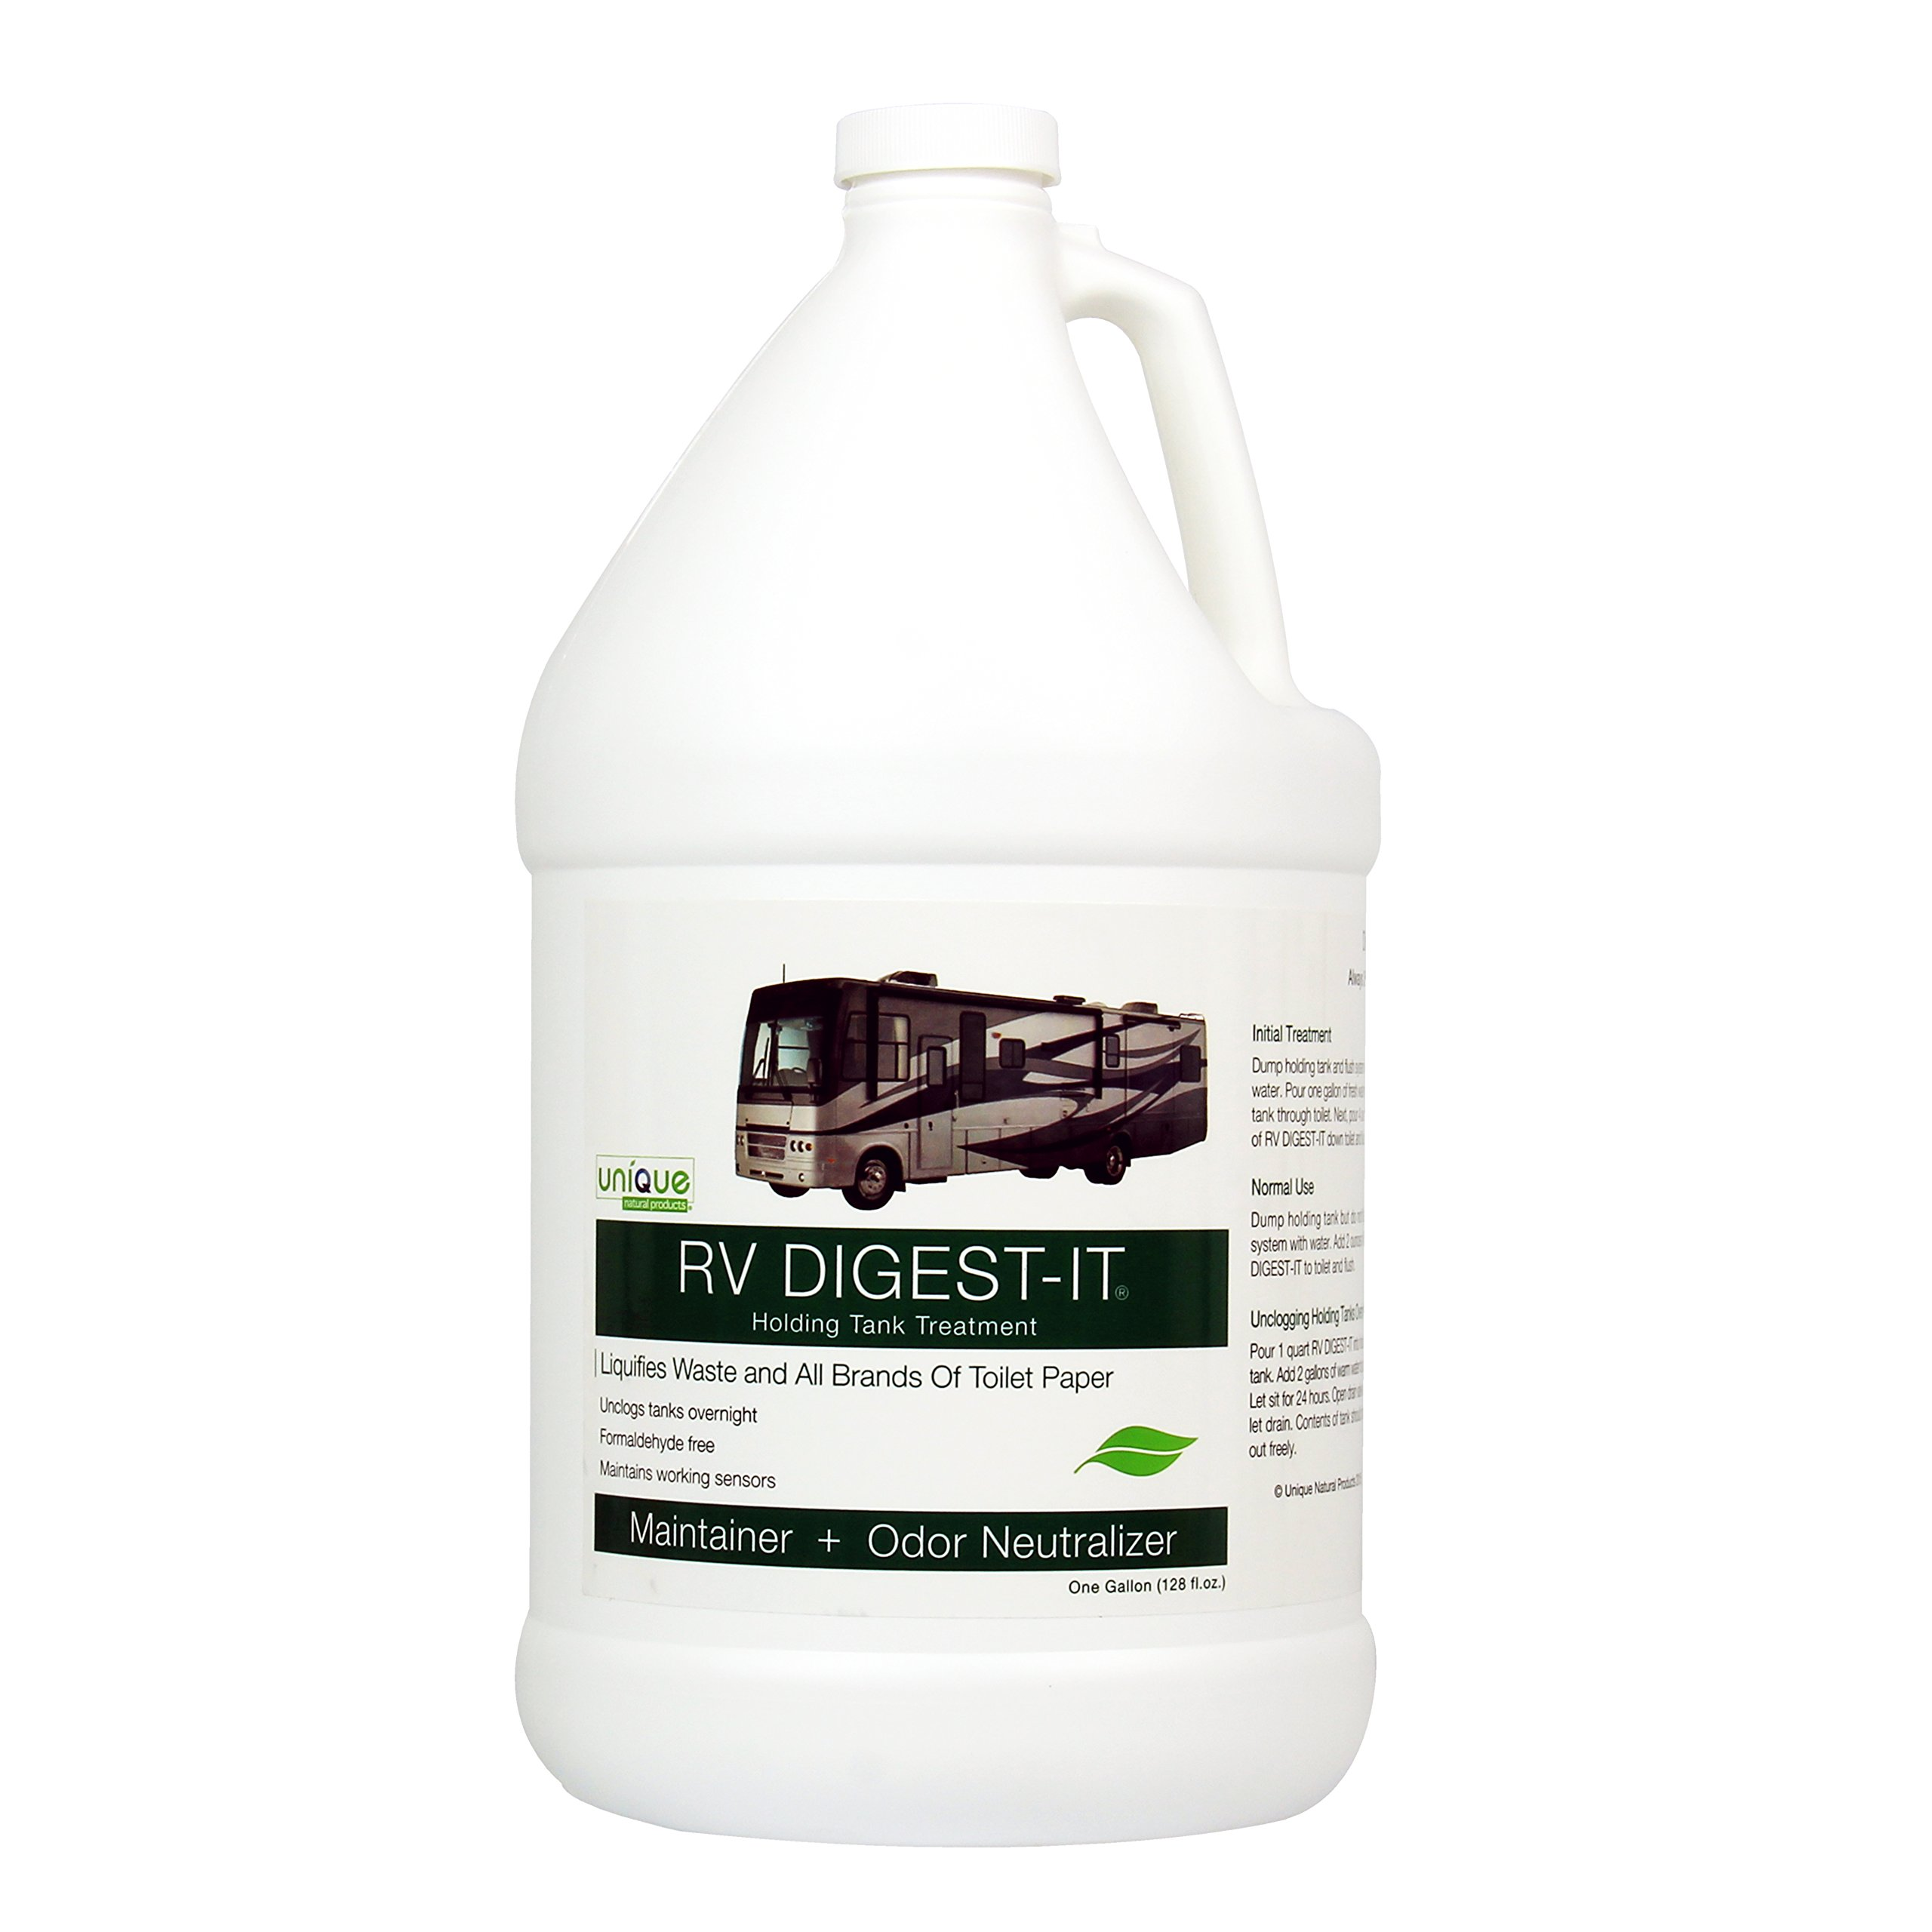 RV DIGEST-IT - Holding Tank Treatment by Unique-1 gallon LIQUID by Unique Camping & Marine